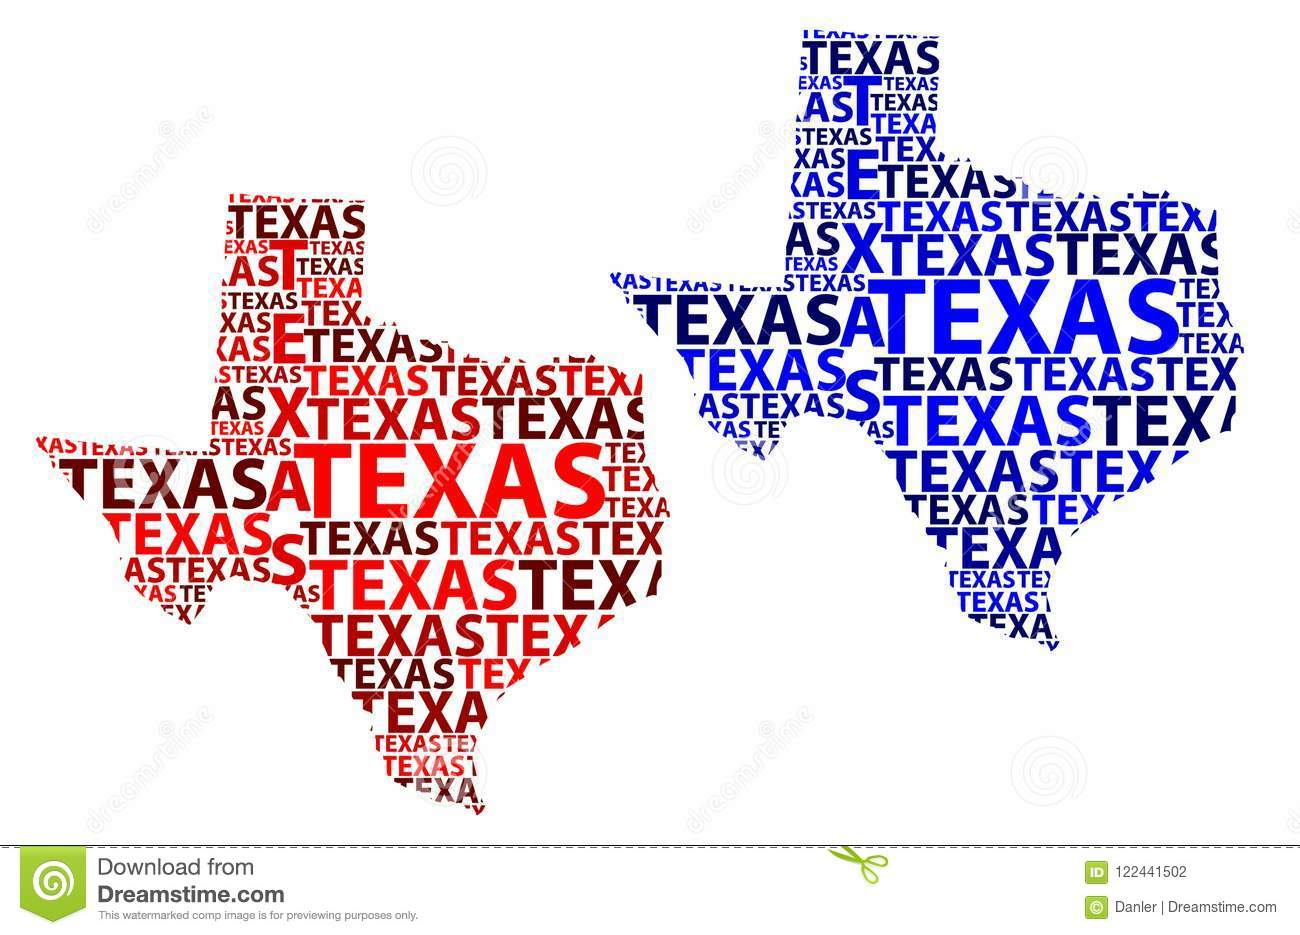 Map Of Texas - Vector Illustration Stock Vector ... Simple Map Of Texas on location of rosenberg texas, major aquifers of texas, google austin texas, american bank of texas, the annexation of texas, geographic center of texas, dallas texas, relative location of texas, geographical id texas, city of rosenberg texas, temperature austin texas, missions of texas, city of manor texas, austin city limits map texas, lakes of texas, 3d physical map texas, printable maps north texas, is there desert in texas, black and white state of texas, stuff about texas,